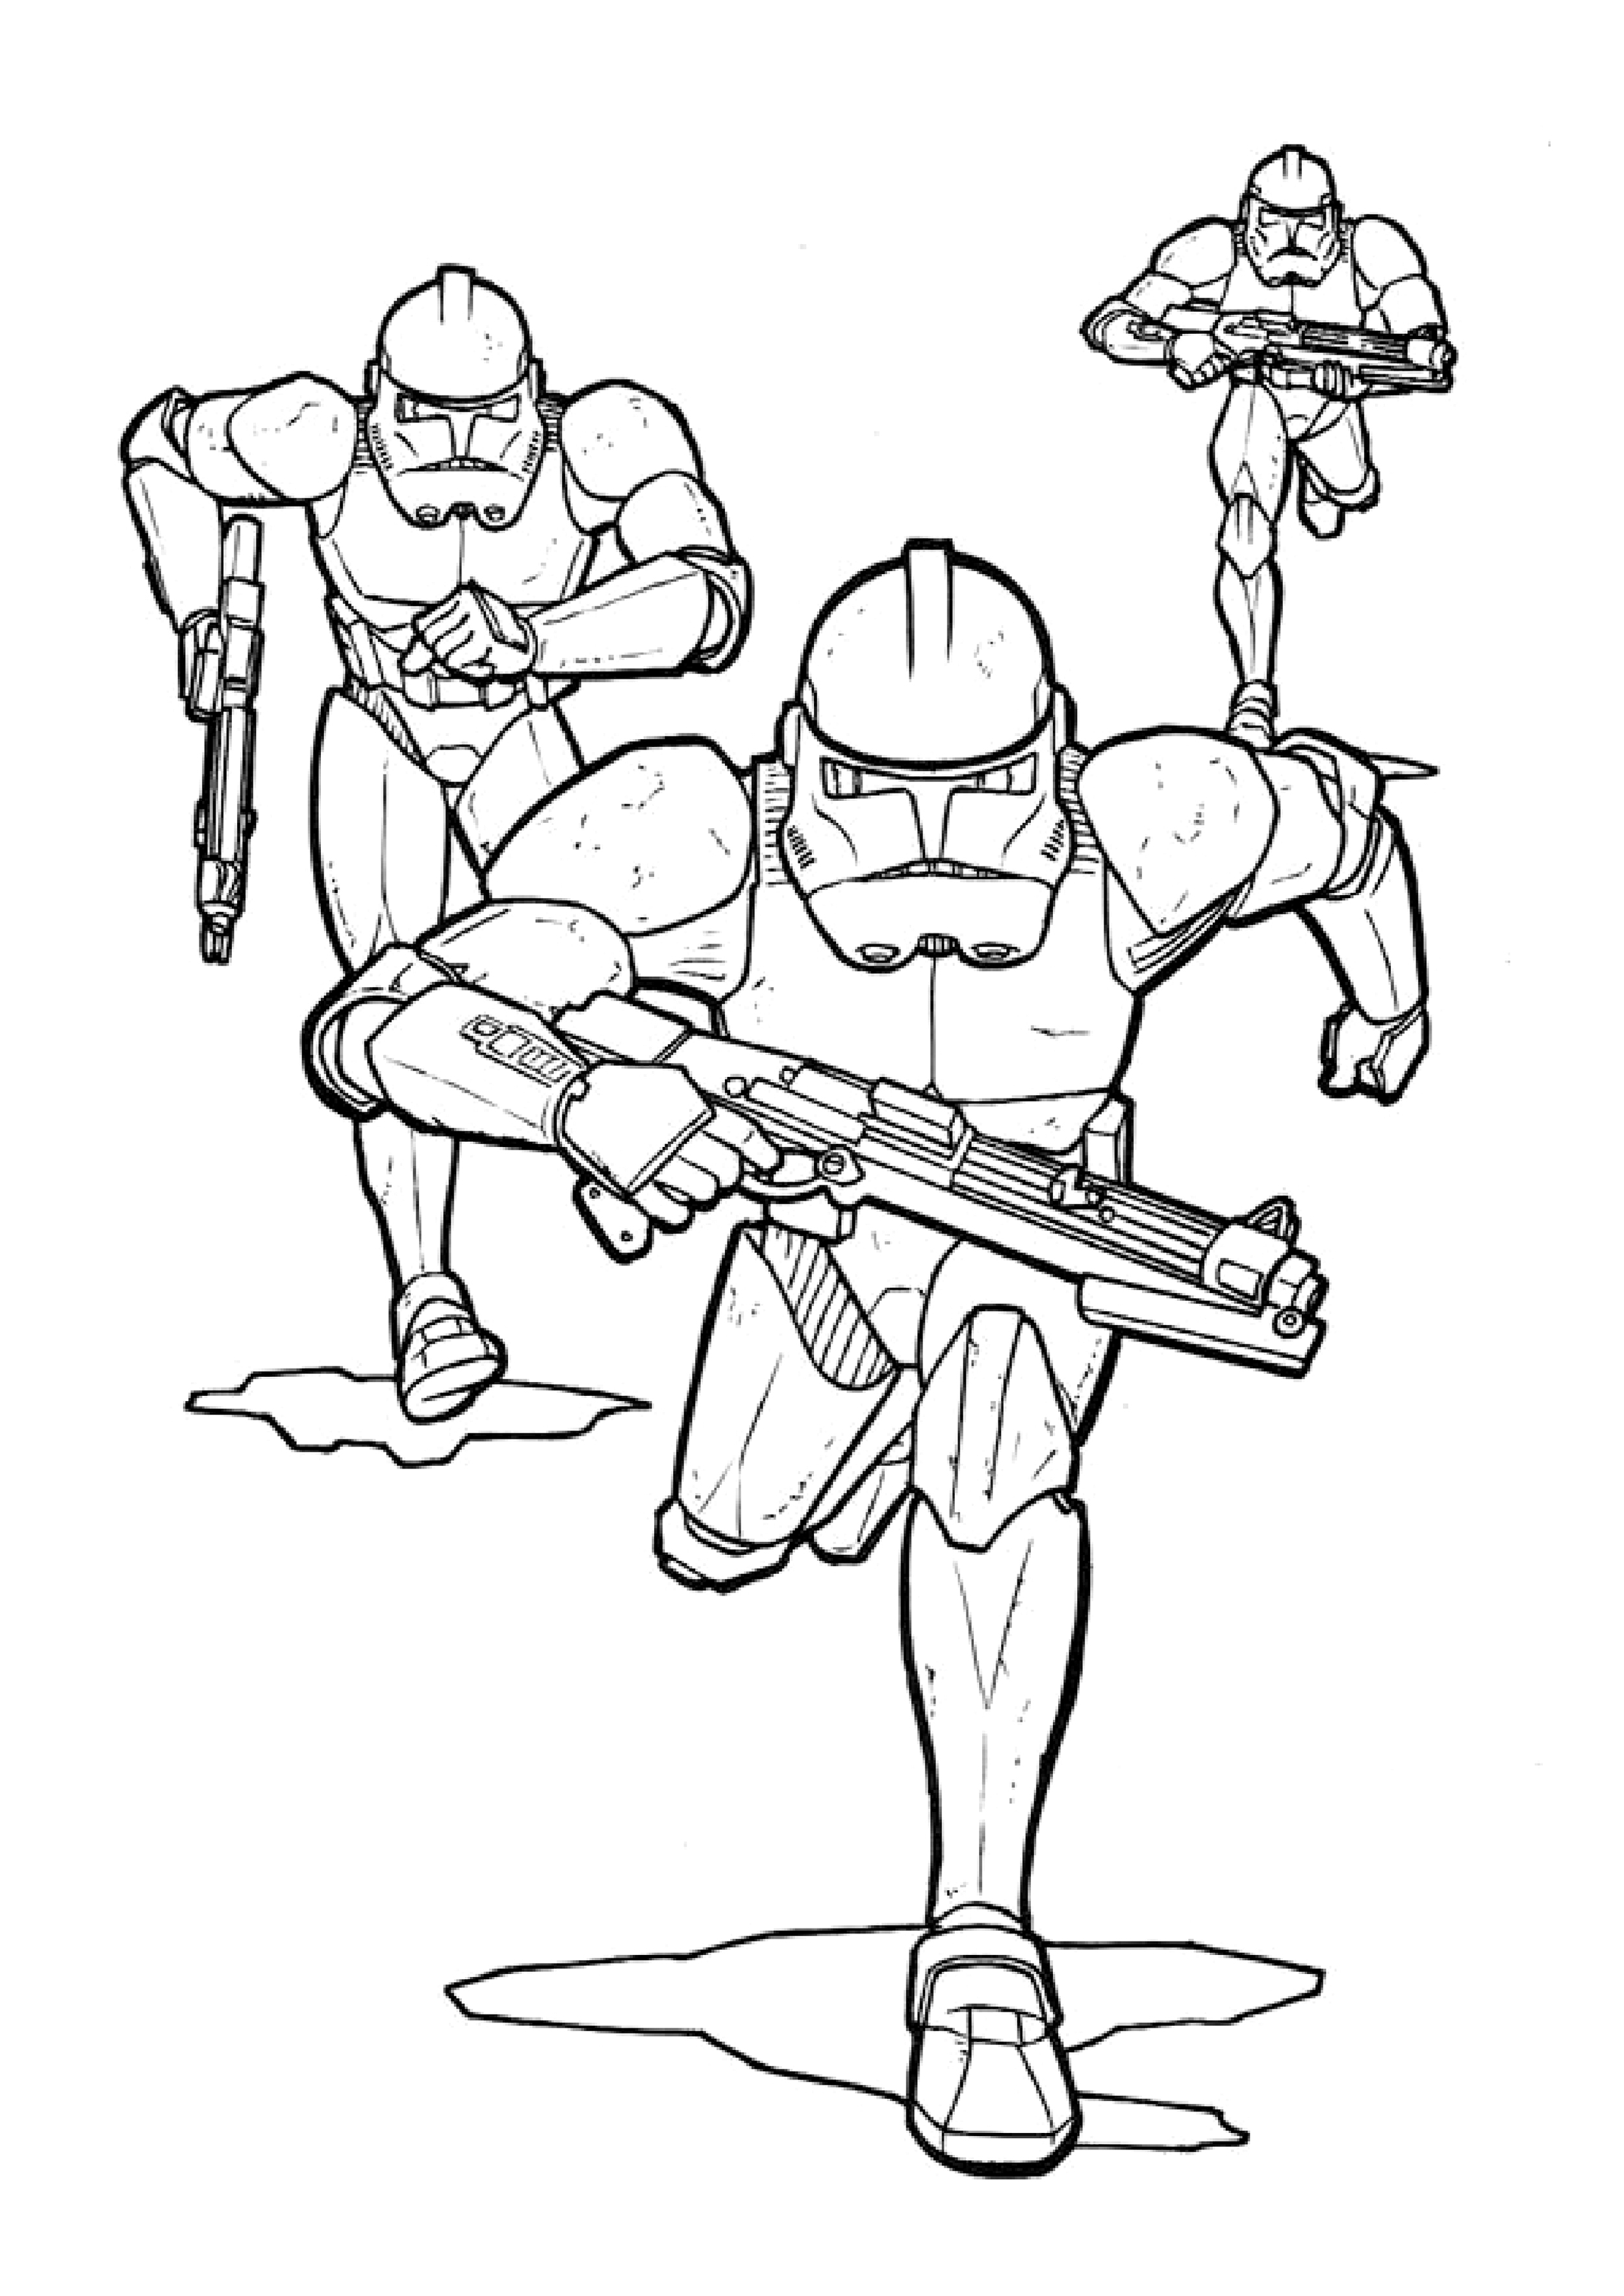 star wars coloring pages to print star wars coloring pages 2018 dr odd star pages wars to coloring print